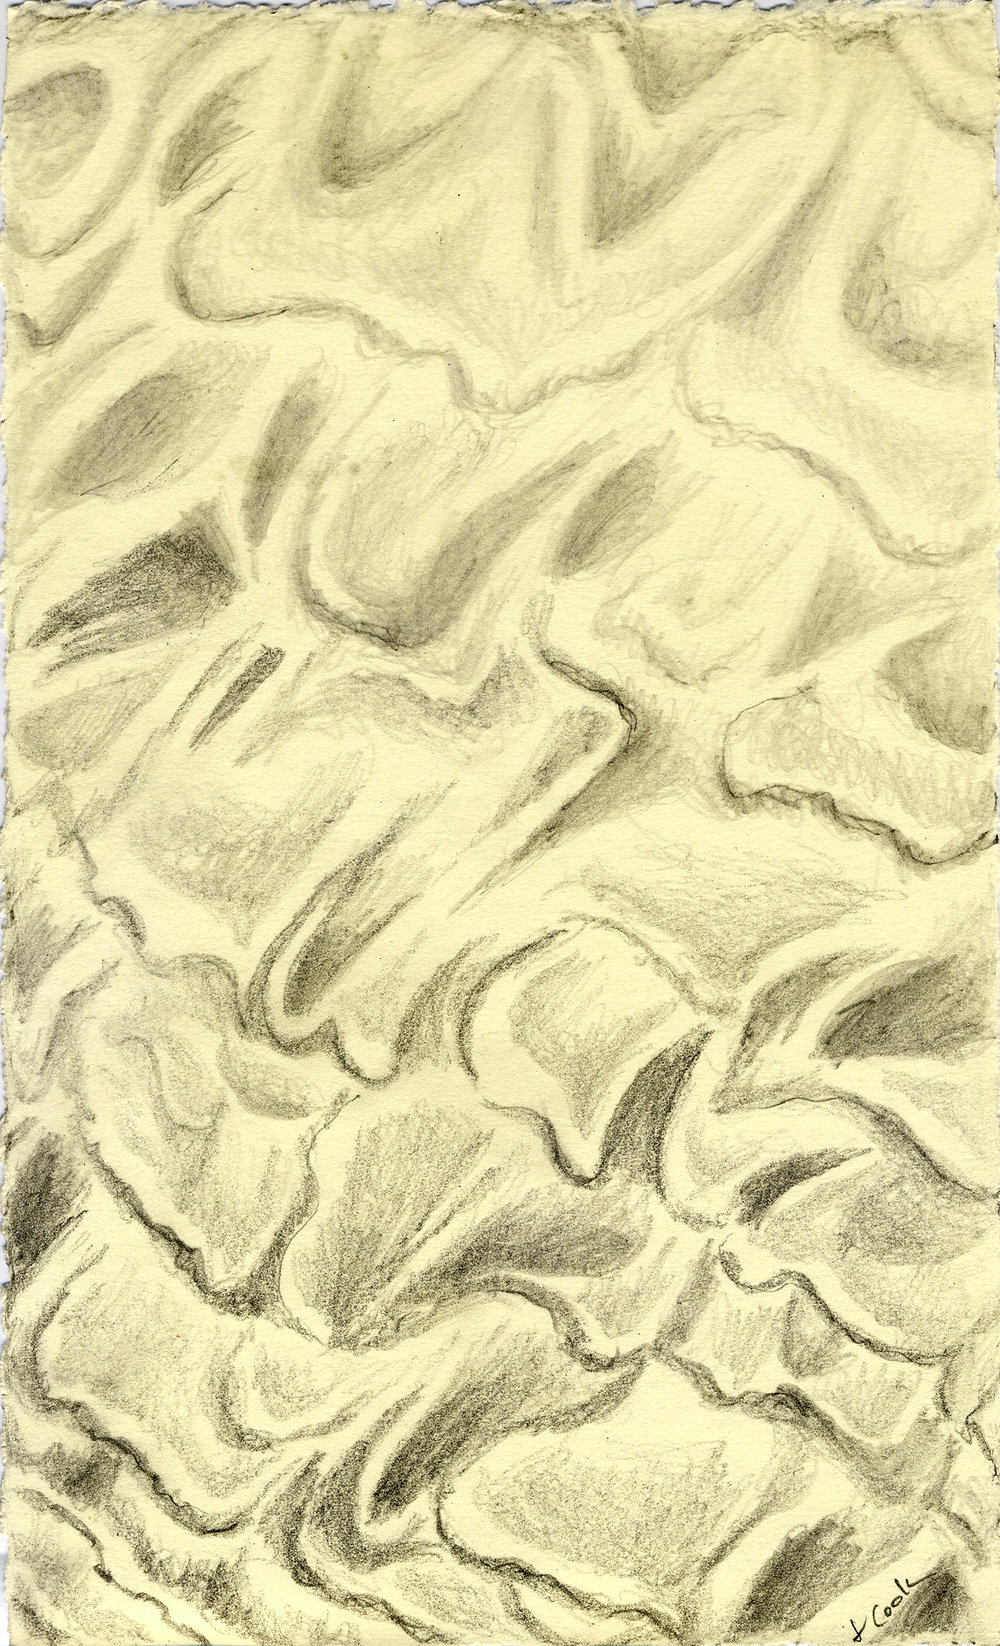 Low Tide Tracery, graphite, Jeannine Cook artist